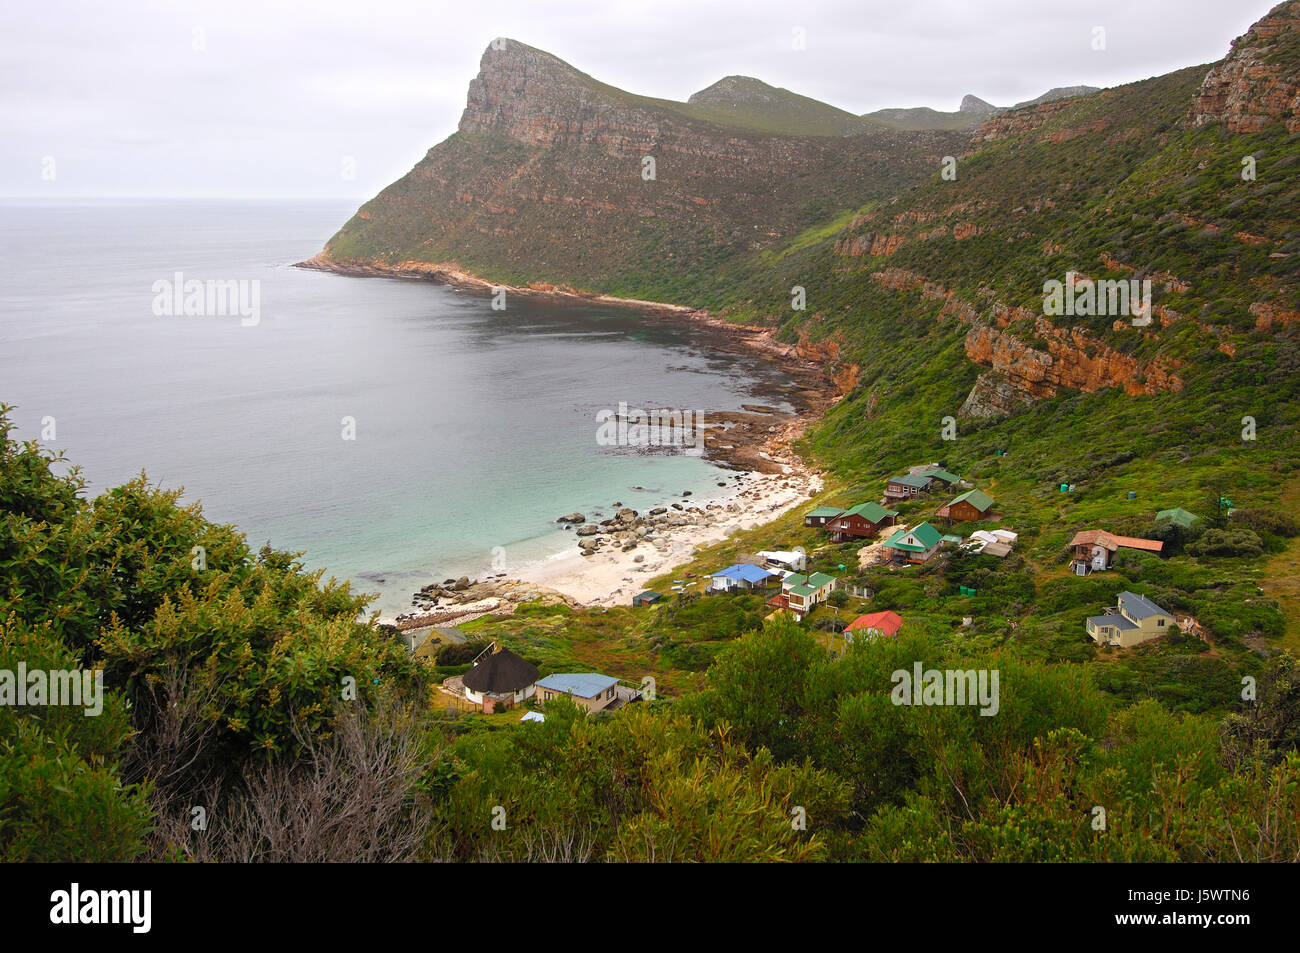 smitswinkel,cape peninsula,south africa - Stock Image